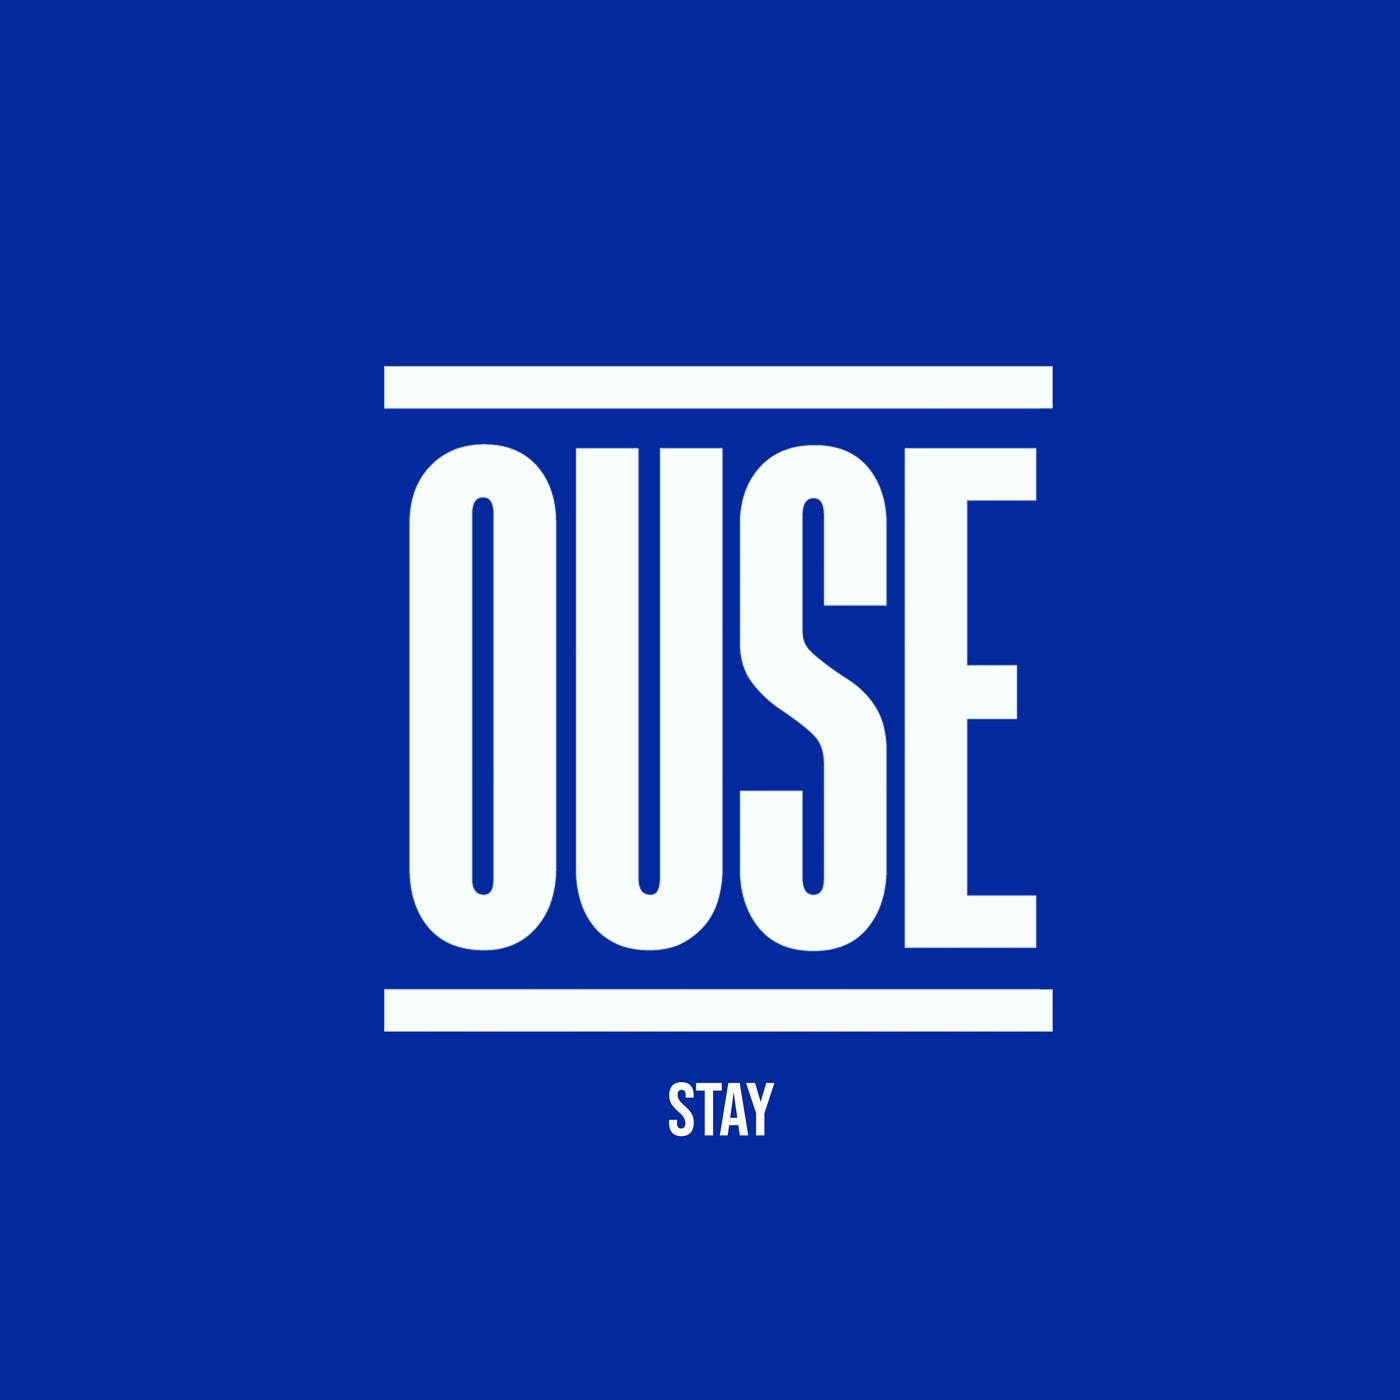 Ouse - Stay (2021)